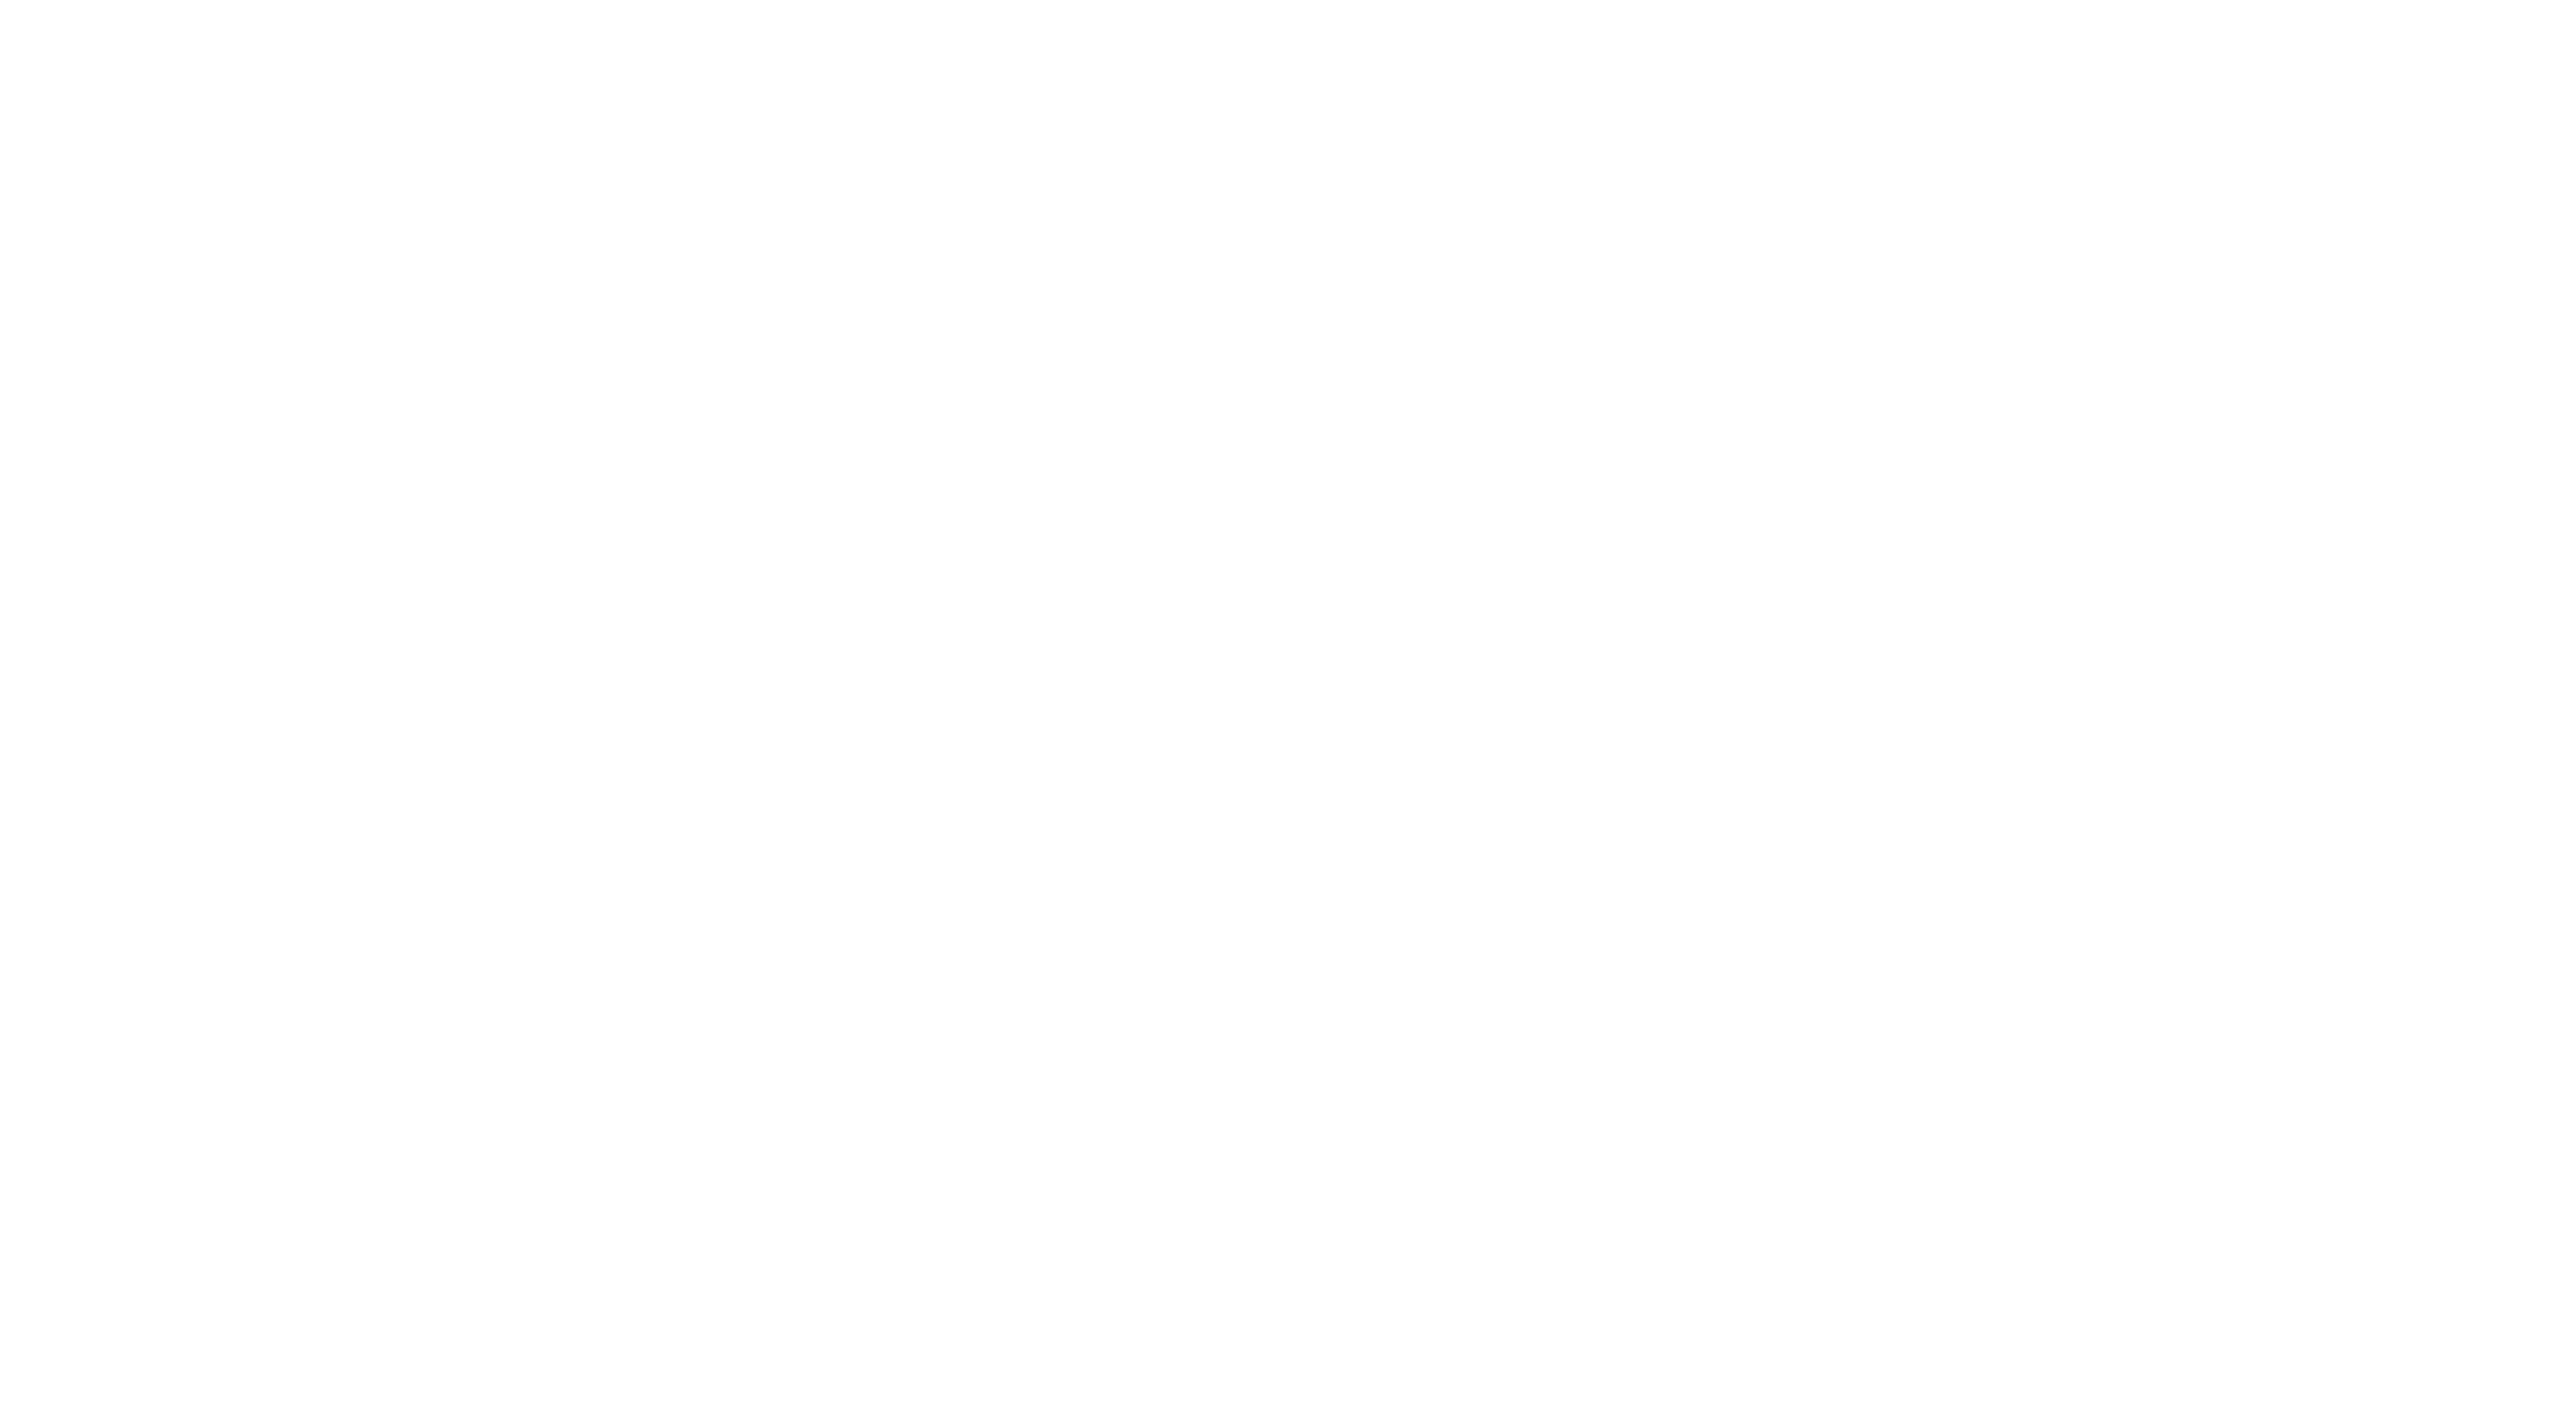 Moss Farm Fisheries